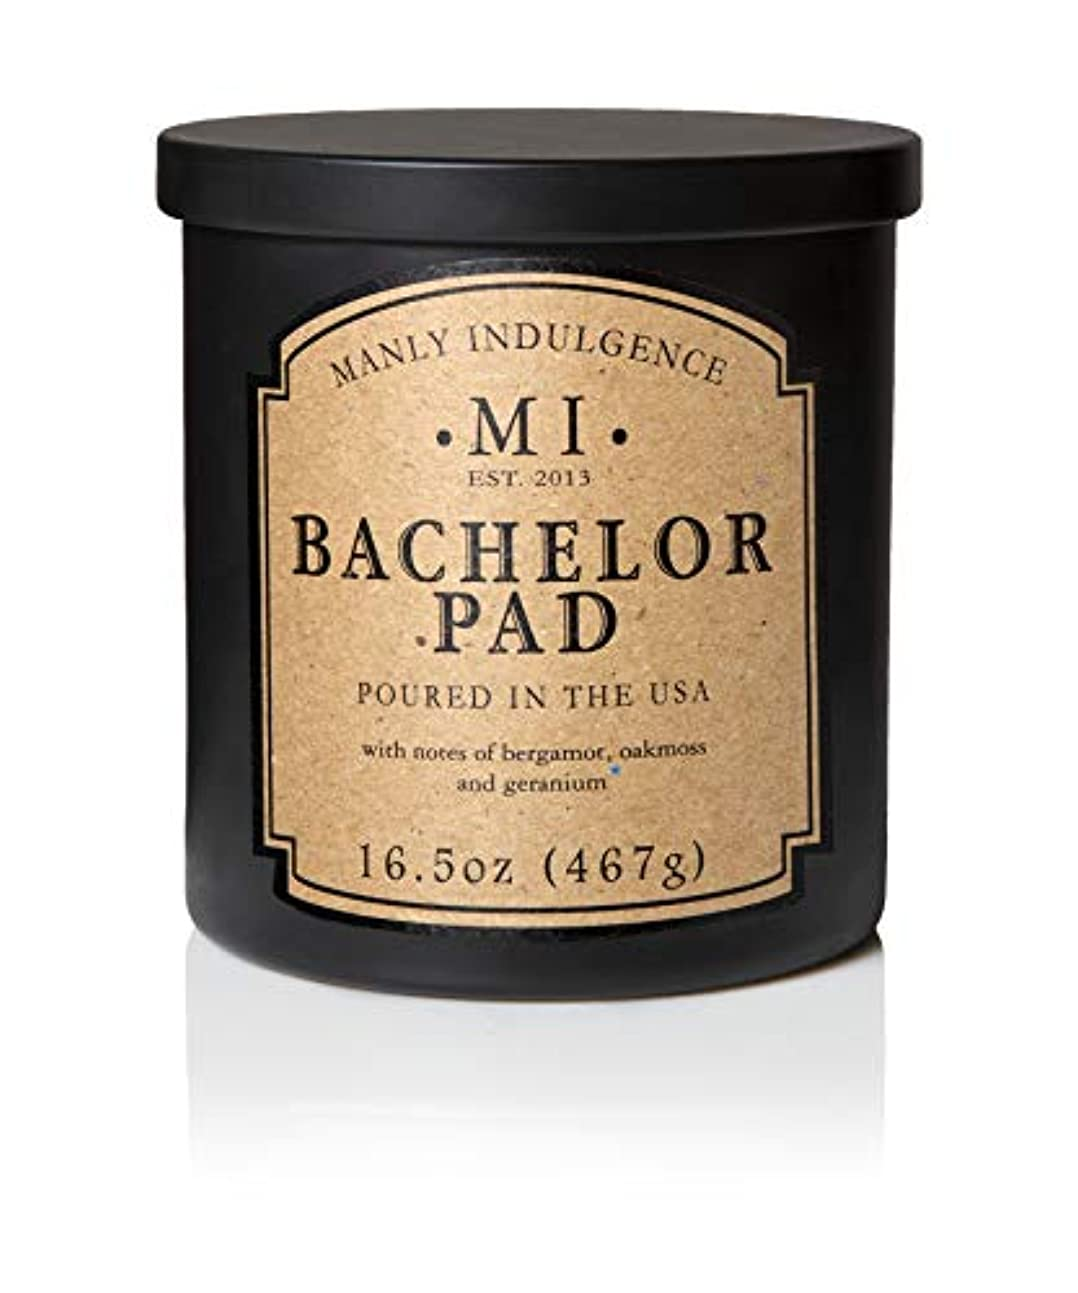 種シリンダーエレガントManly Indulgence Bachelor Pad Scented Candle - 1 Wick - 16.5 Oz. by Decoware